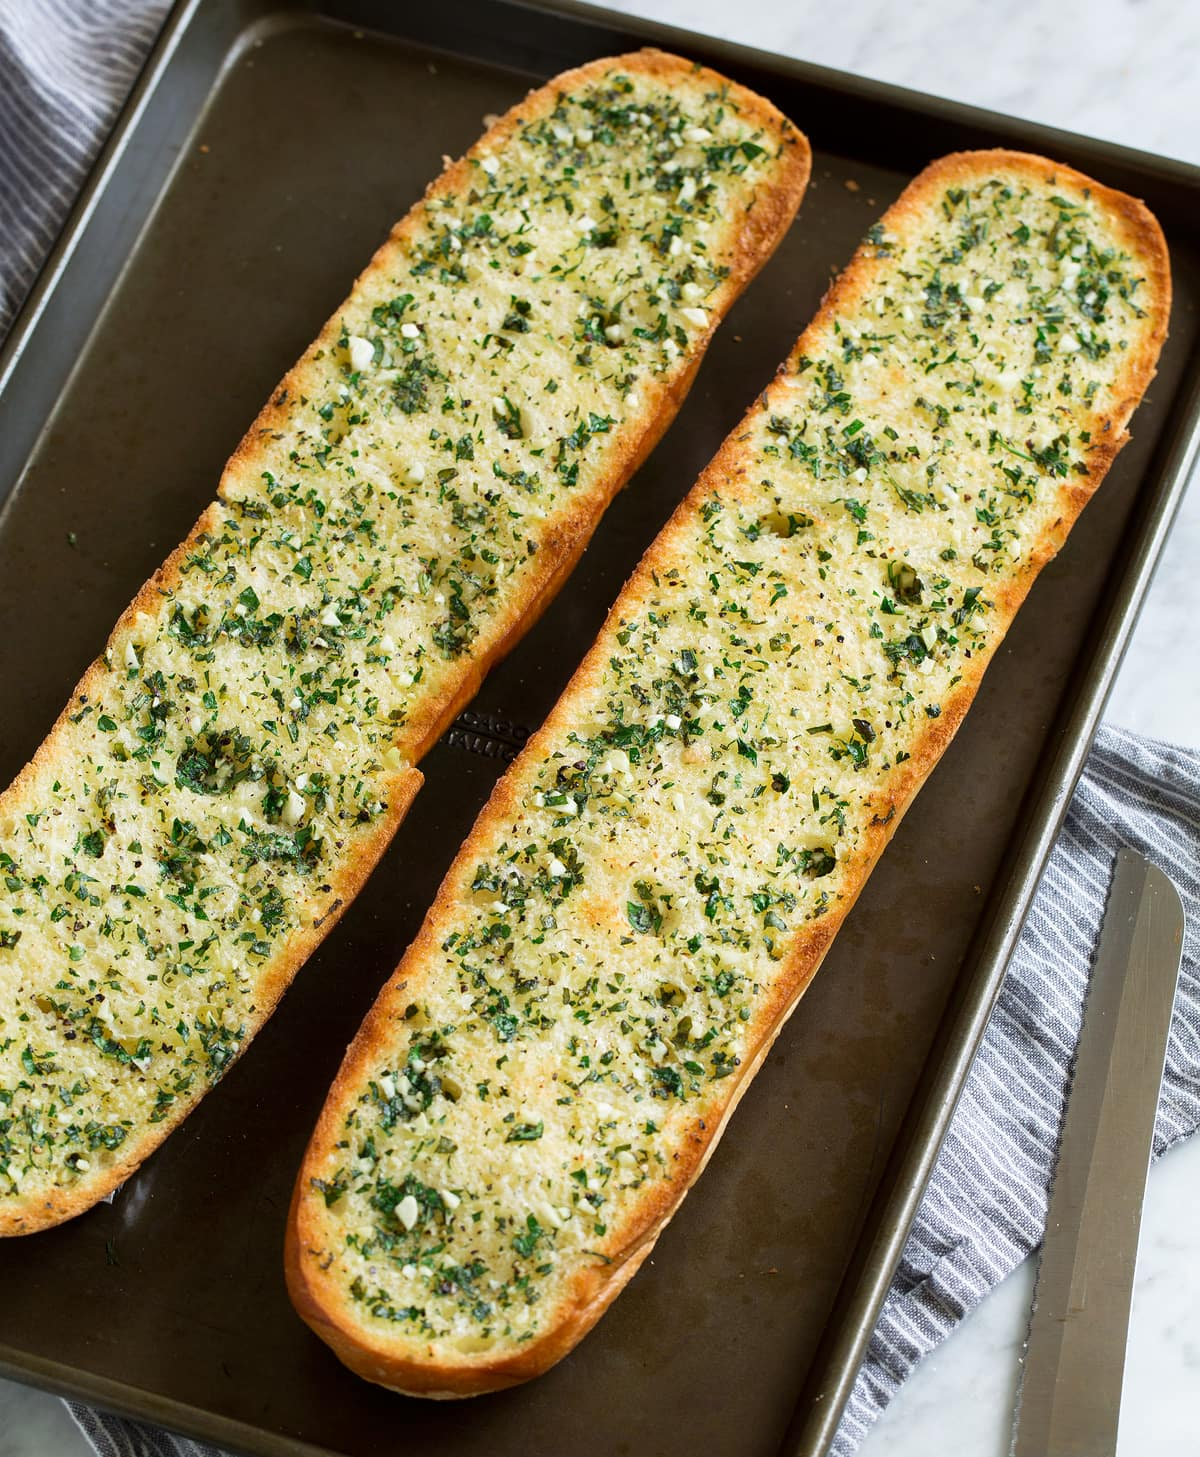 Two garlic bread halves on a dark baking sheet. Shown after toasting.